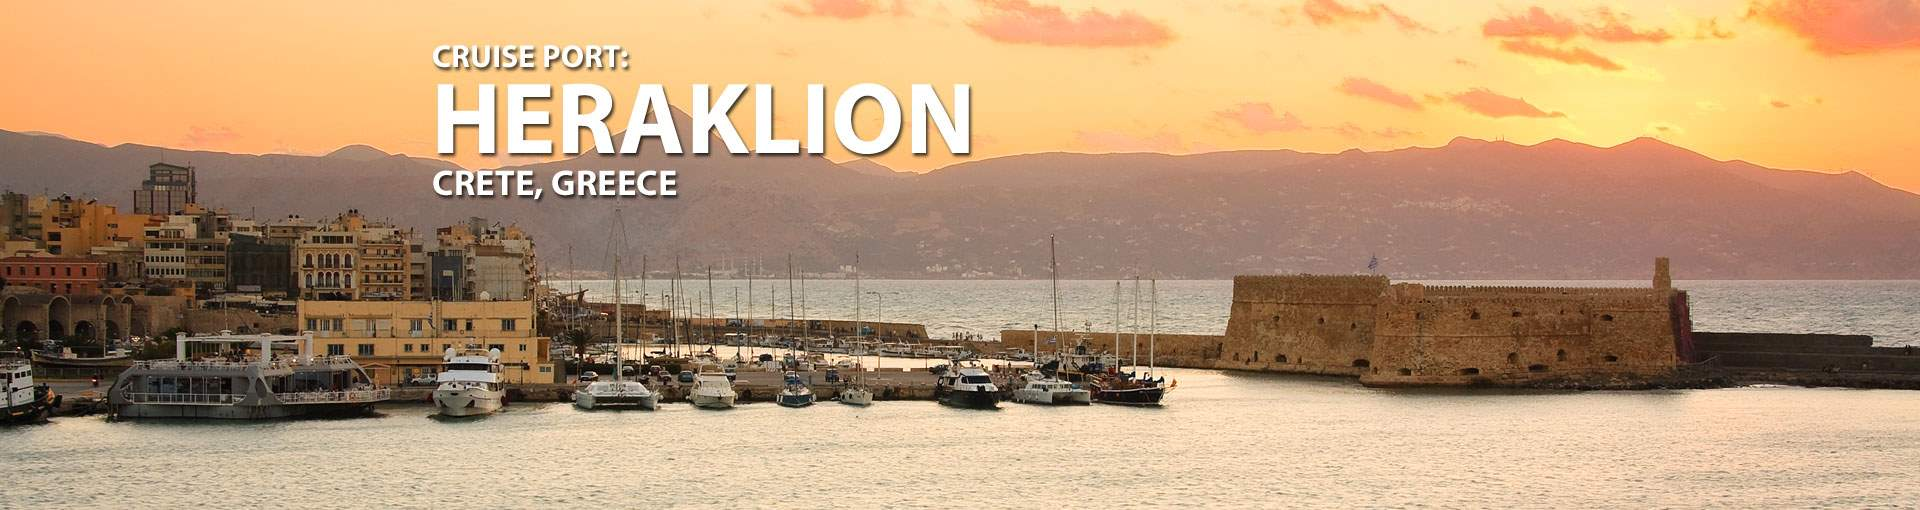 Cruises to Heraklion, Crete, Greece